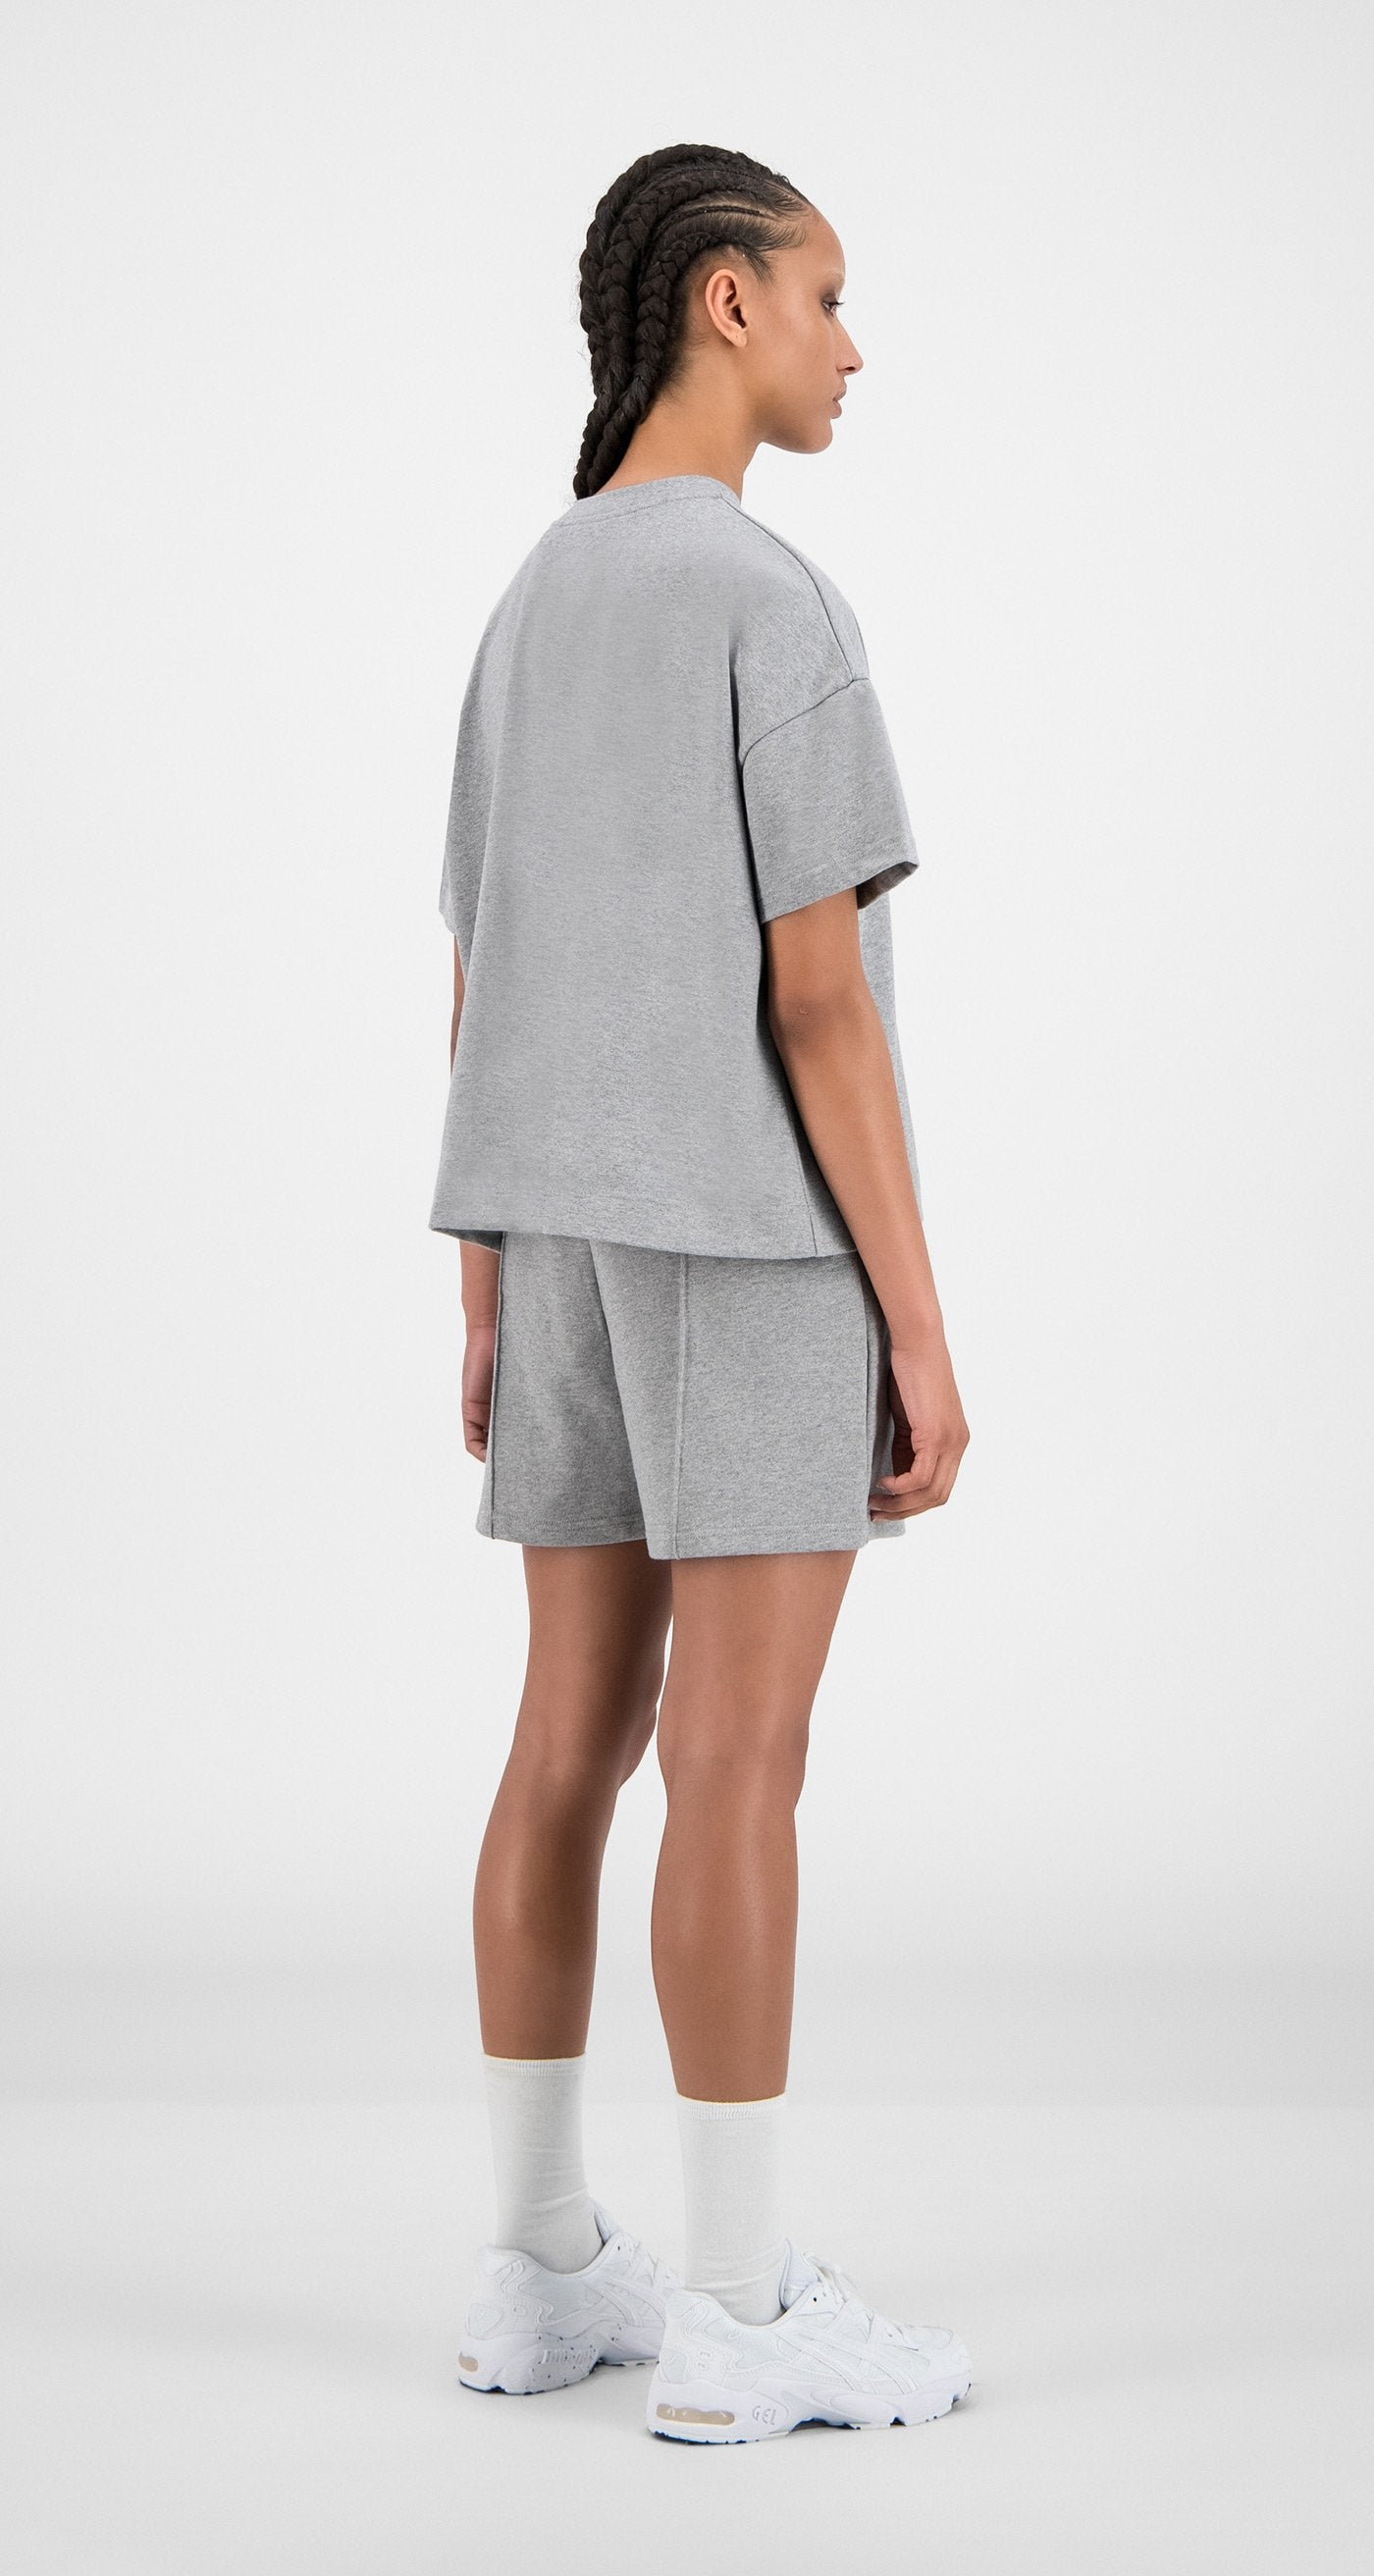 Daily Paper - Grey Hice T-Shirt - Women Rear